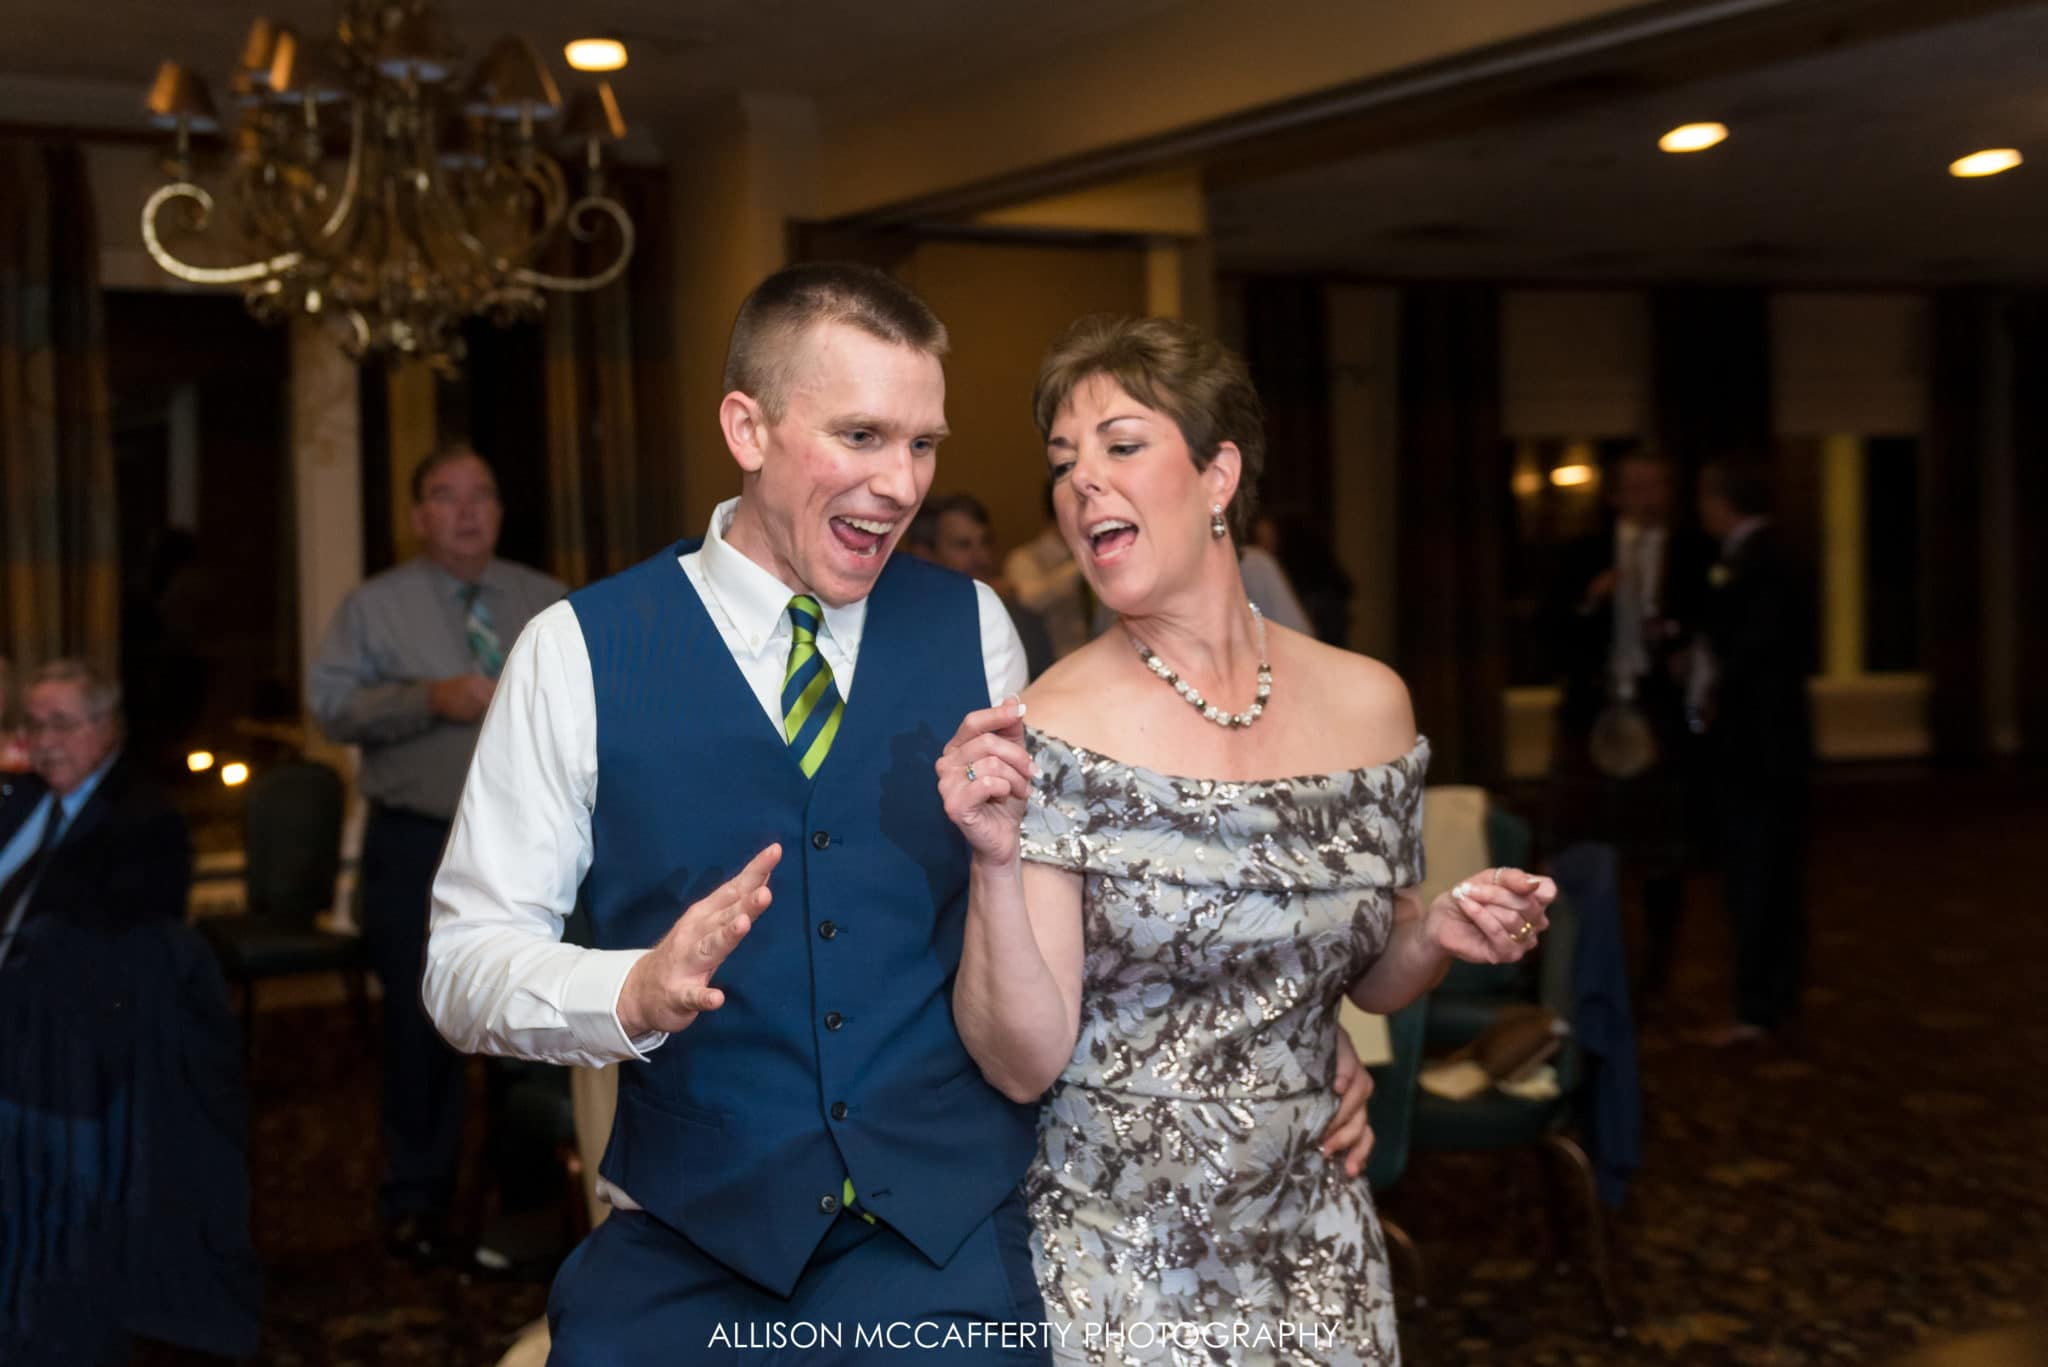 Groom and mother of the bride dancing at wedding reception